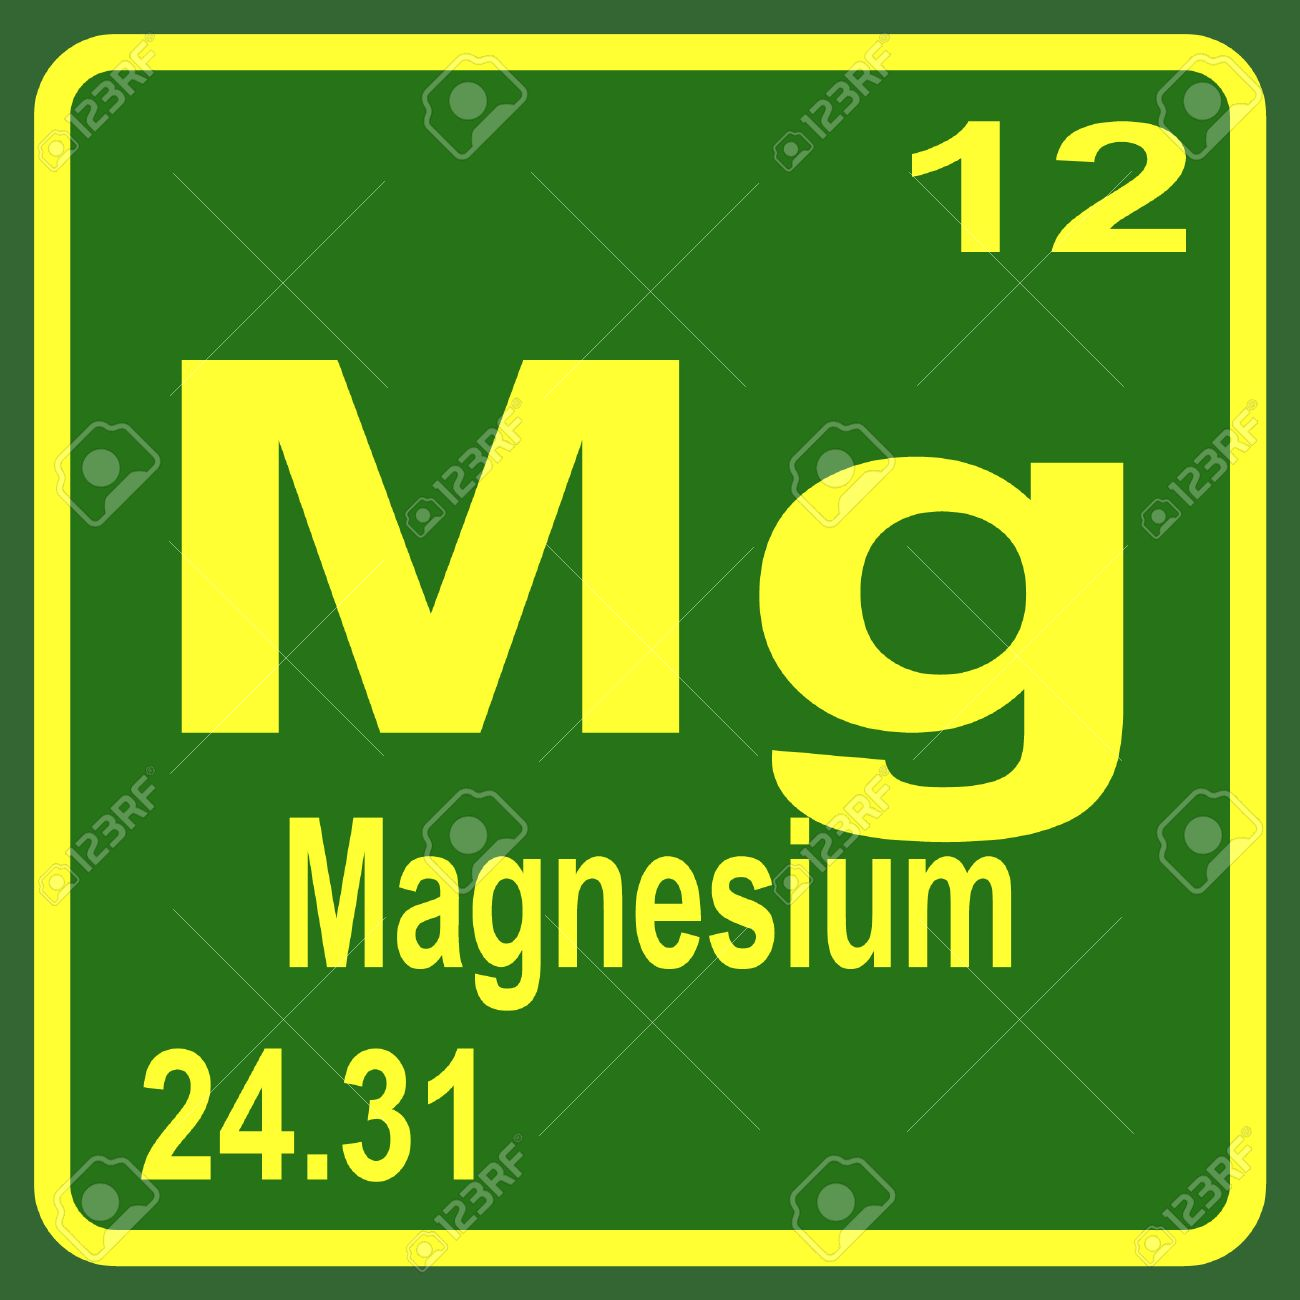 Periodic table of elements magnesium royalty free cliparts periodic table of elements magnesium stock vector 53901617 urtaz Choice Image